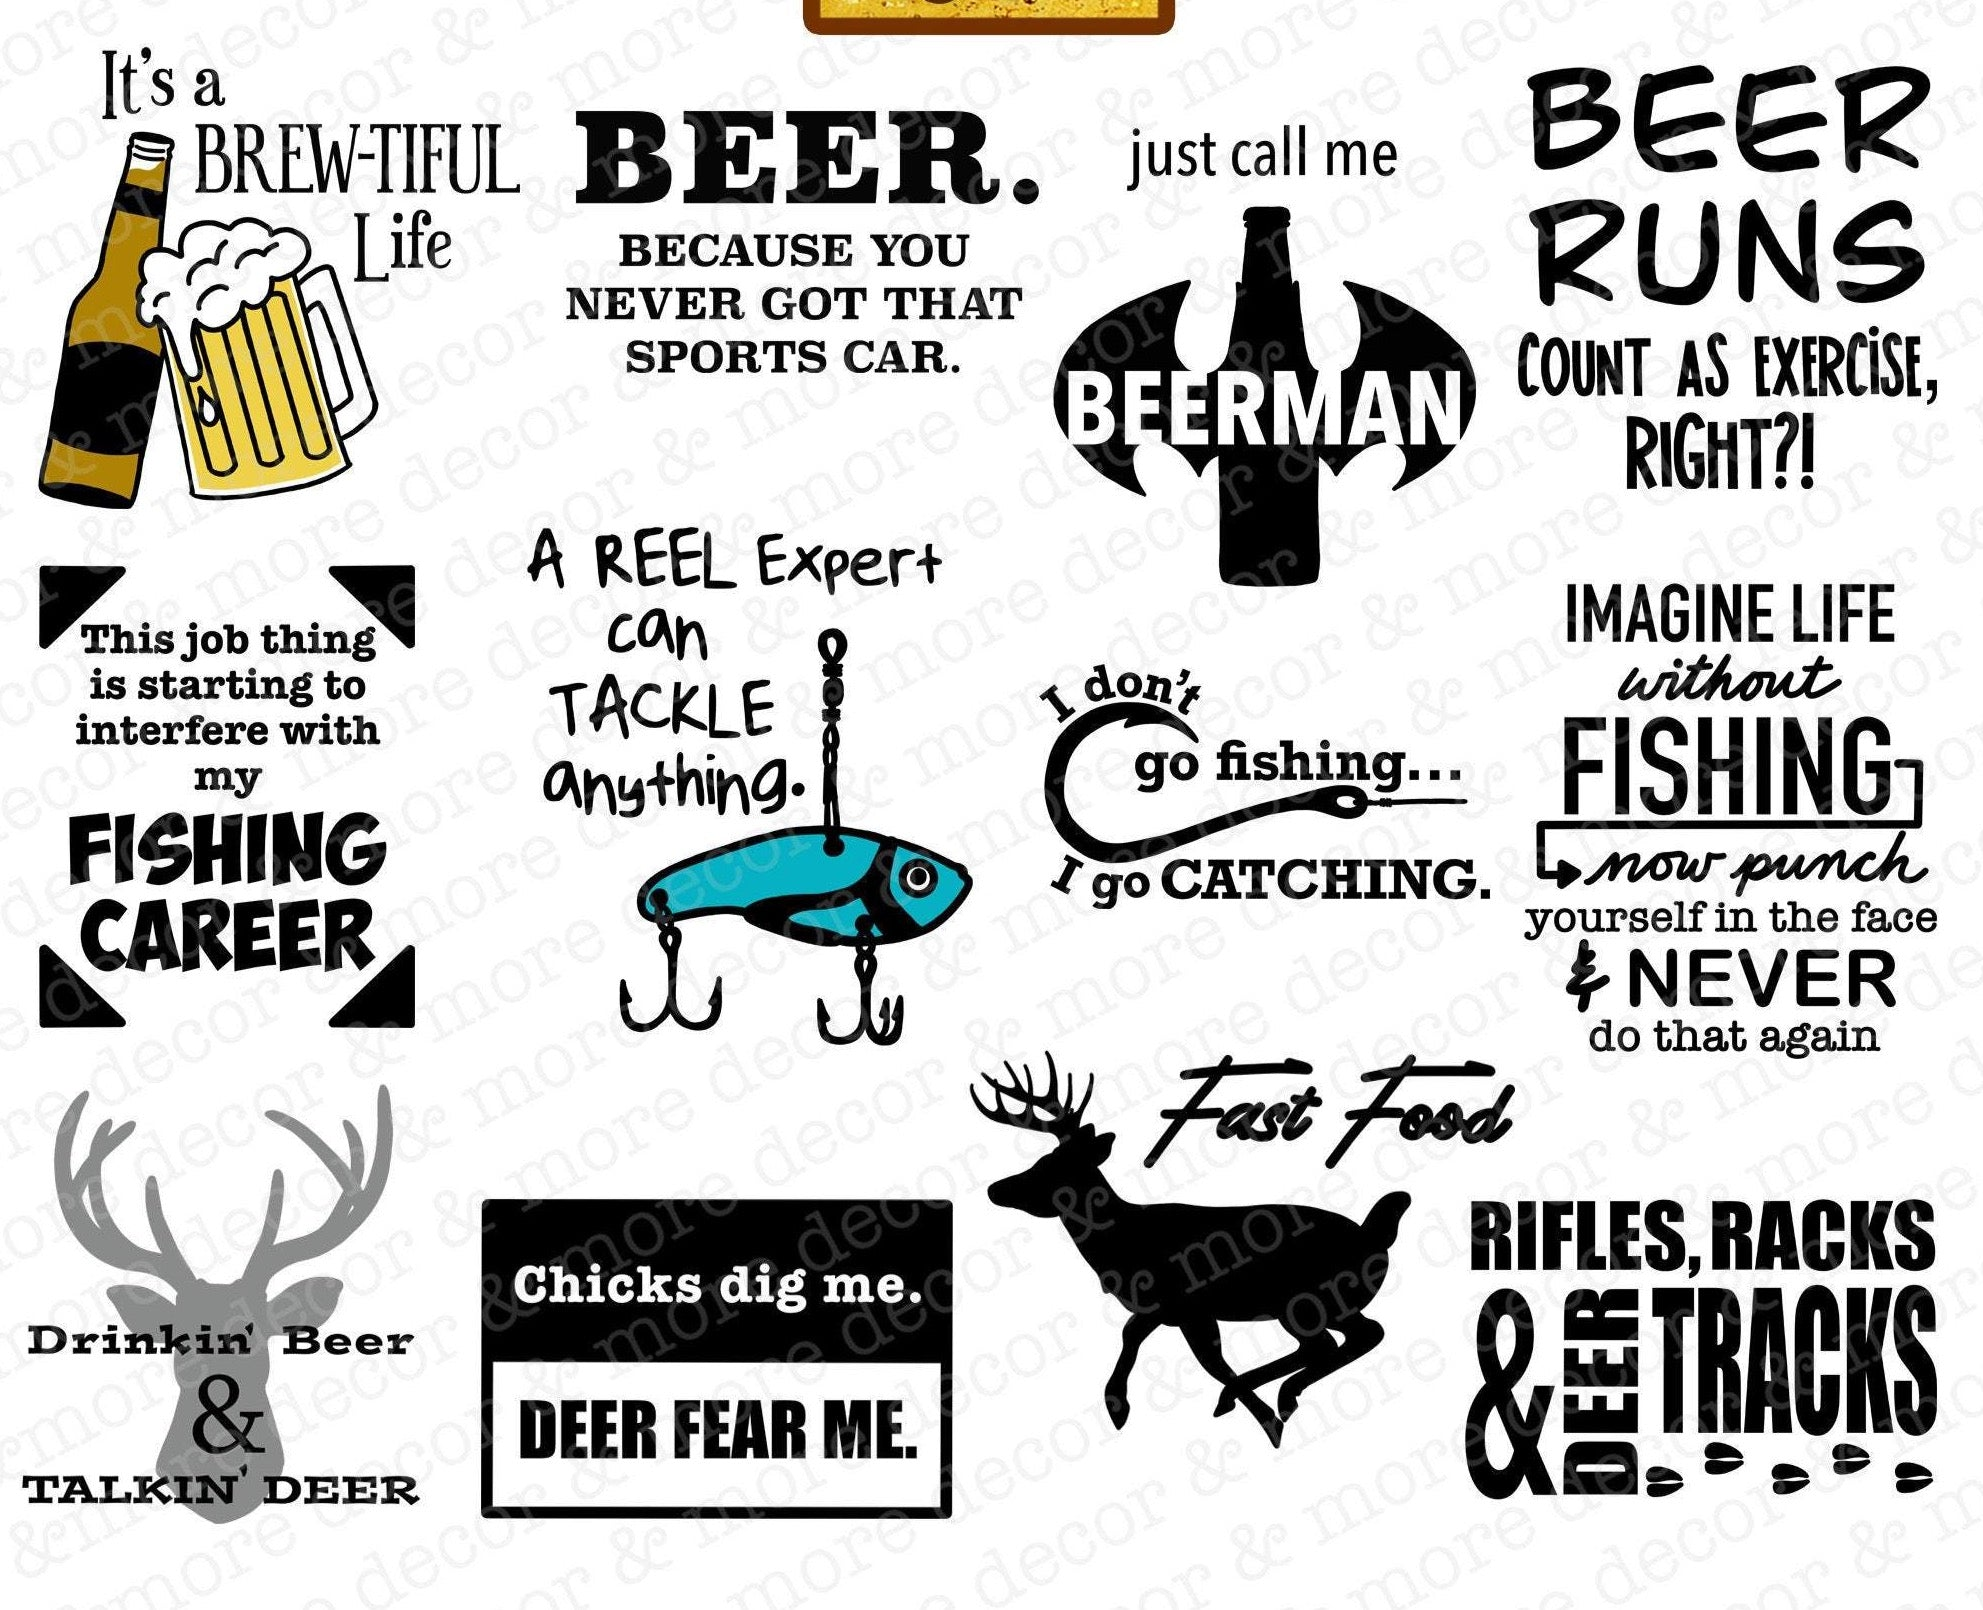 Mens SVG File Bundle, Funny Beer SVG Files, Funny Deer Hunting SVG Files, Funny Fishing SVG Files, Beer Quote SVG, Deer Quote SVG, Fishing Saying SVG FILES